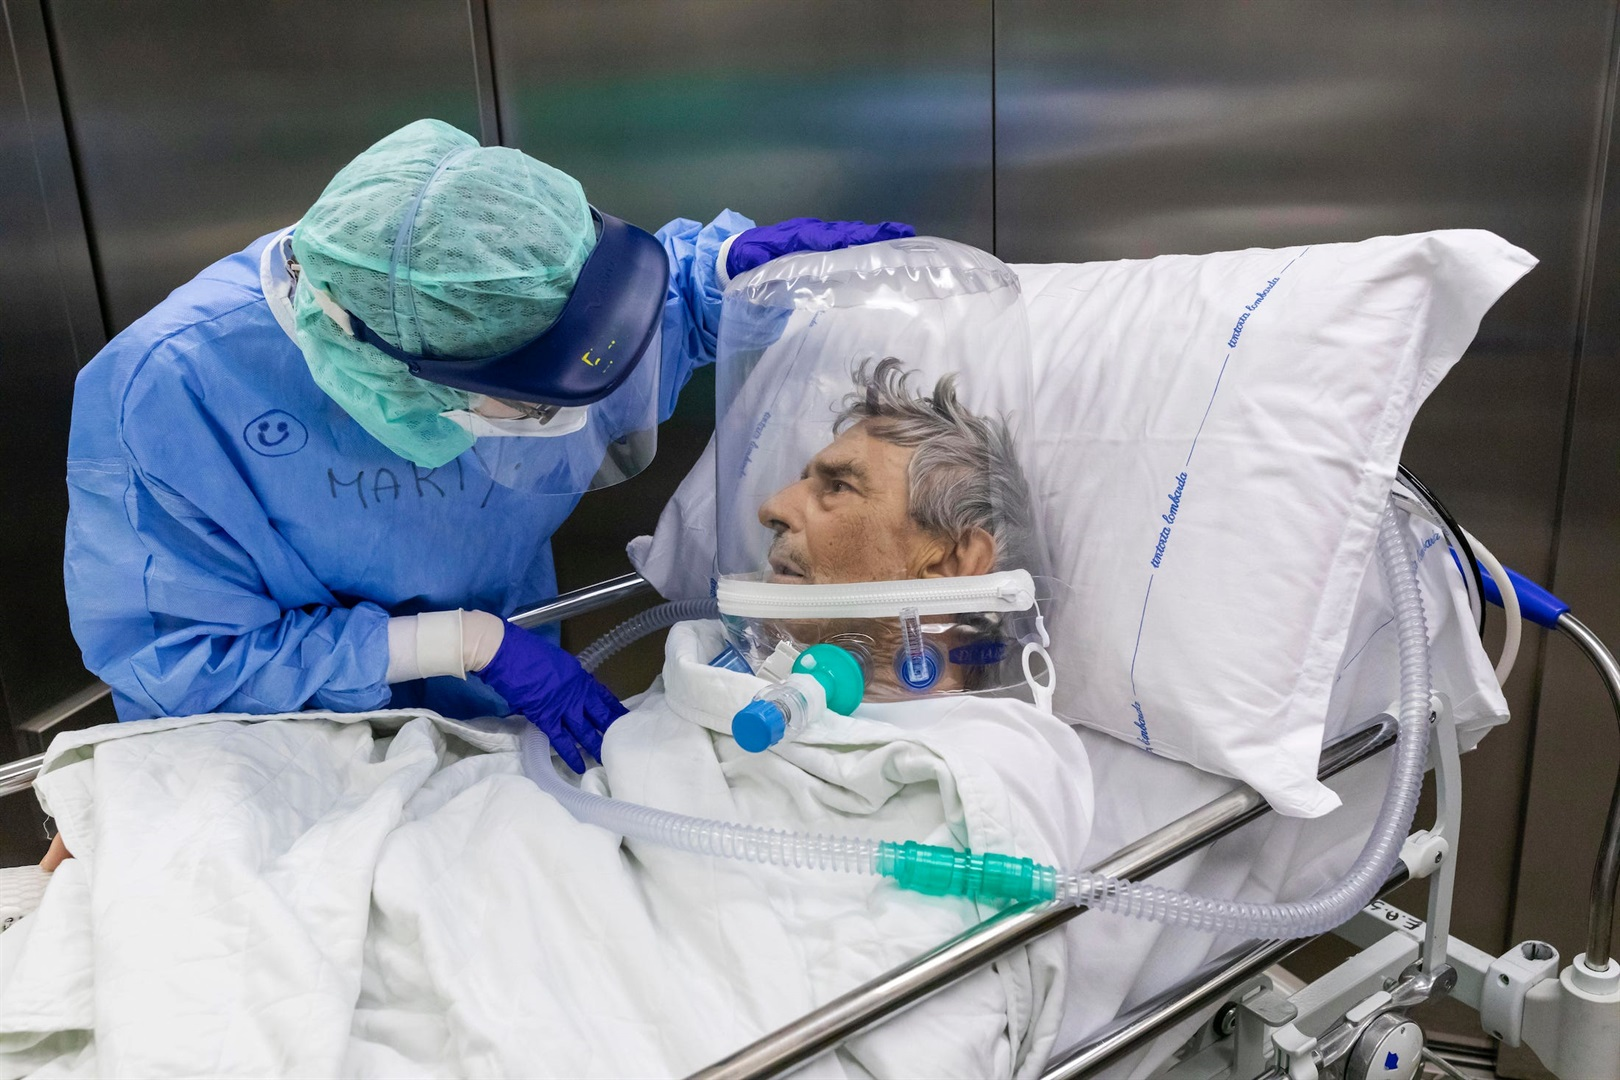 A nurse attends to a Covid-19 patient after he was moved out of the ICU of Pope John XXIII Hospital in Bergamo, Italy, on April 7, 2020.